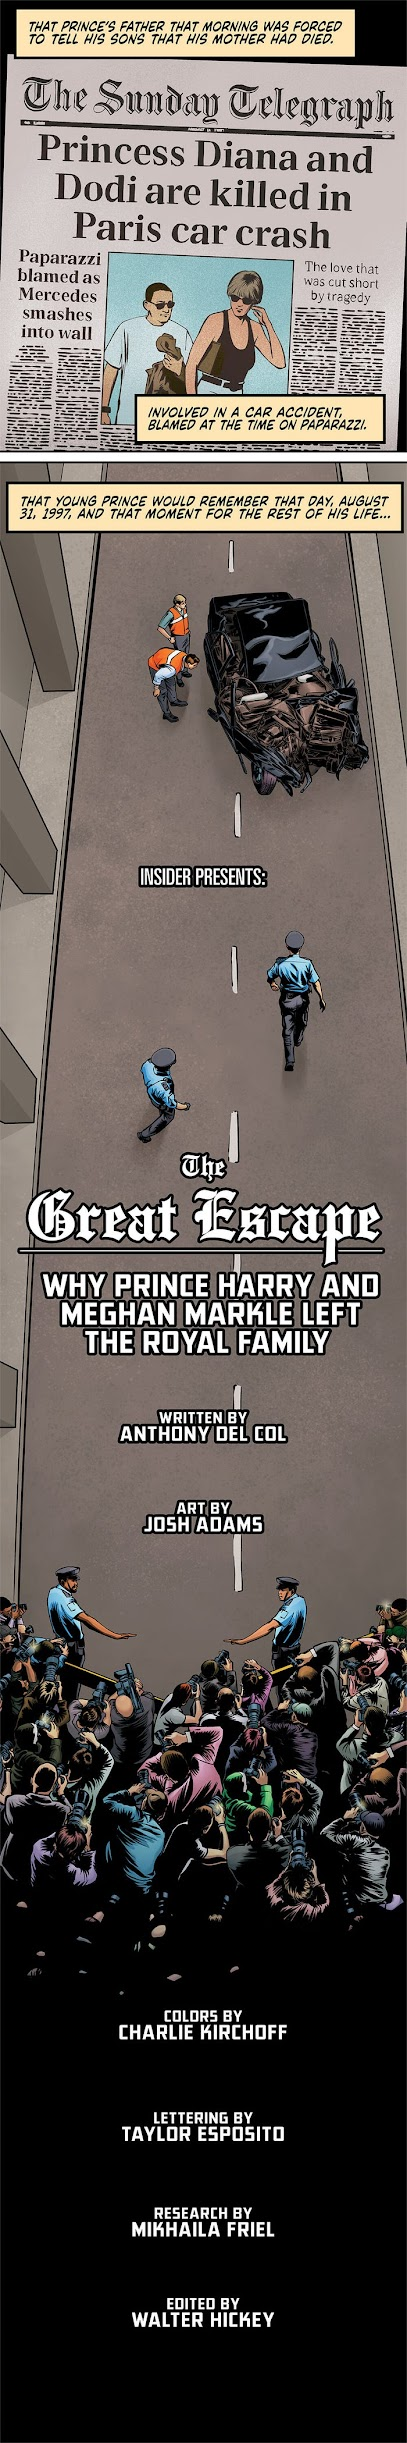 For those wanting to read the story behind Meghan and Harry's decision to step down as senior royals in a different format, Check Out this illustrated comic version published by virtual news platform Insider.